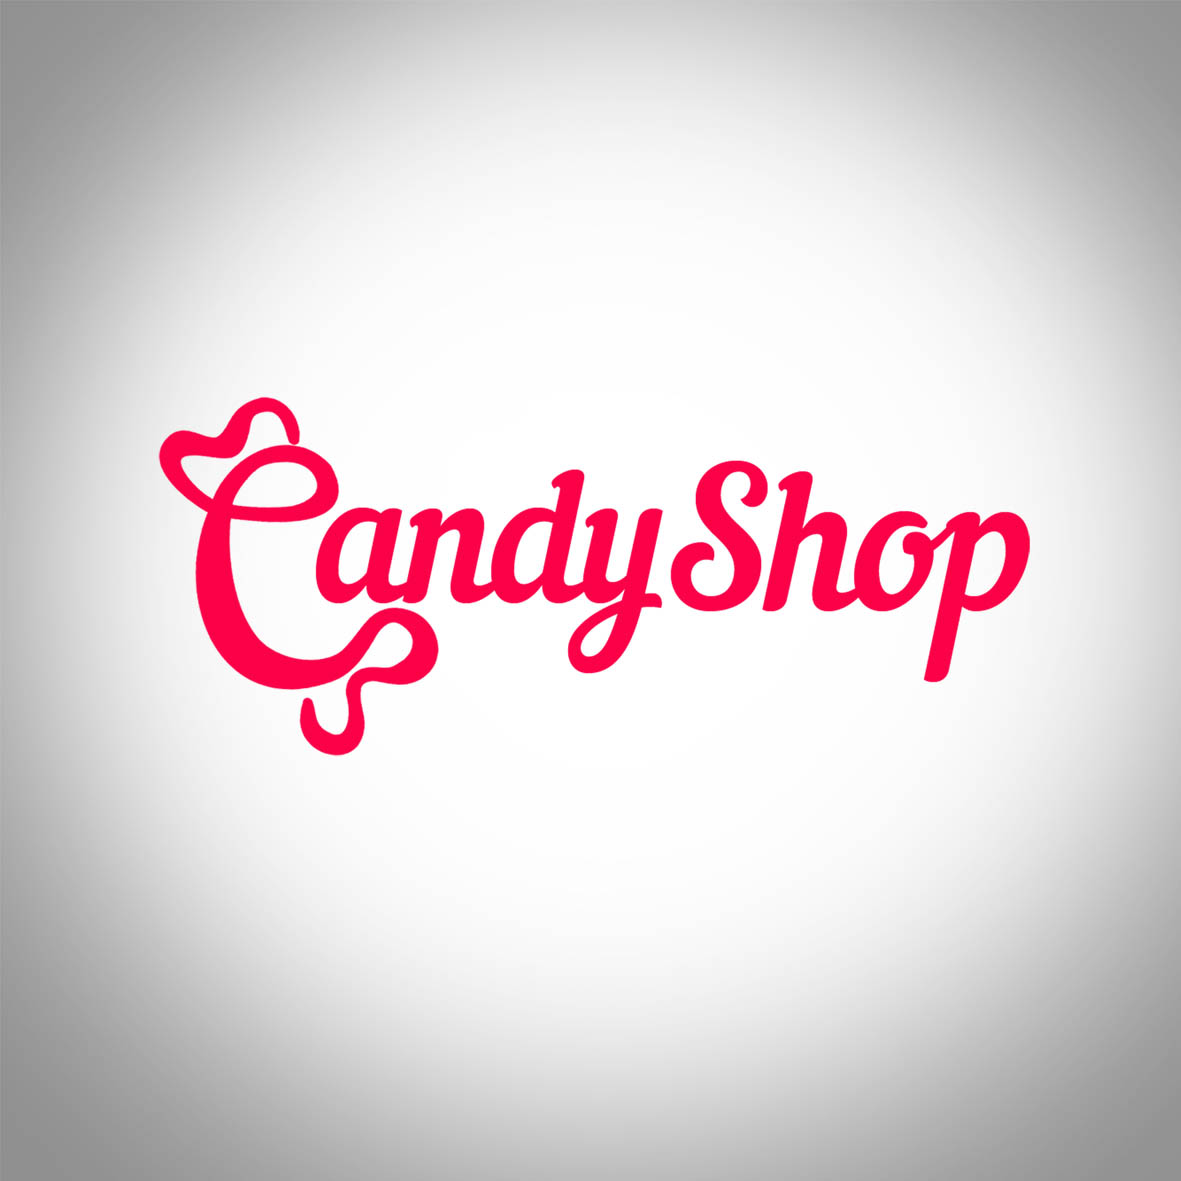 Candy Shop Design Related Keywords u0026 Suggestions - Candy Shop Design ...